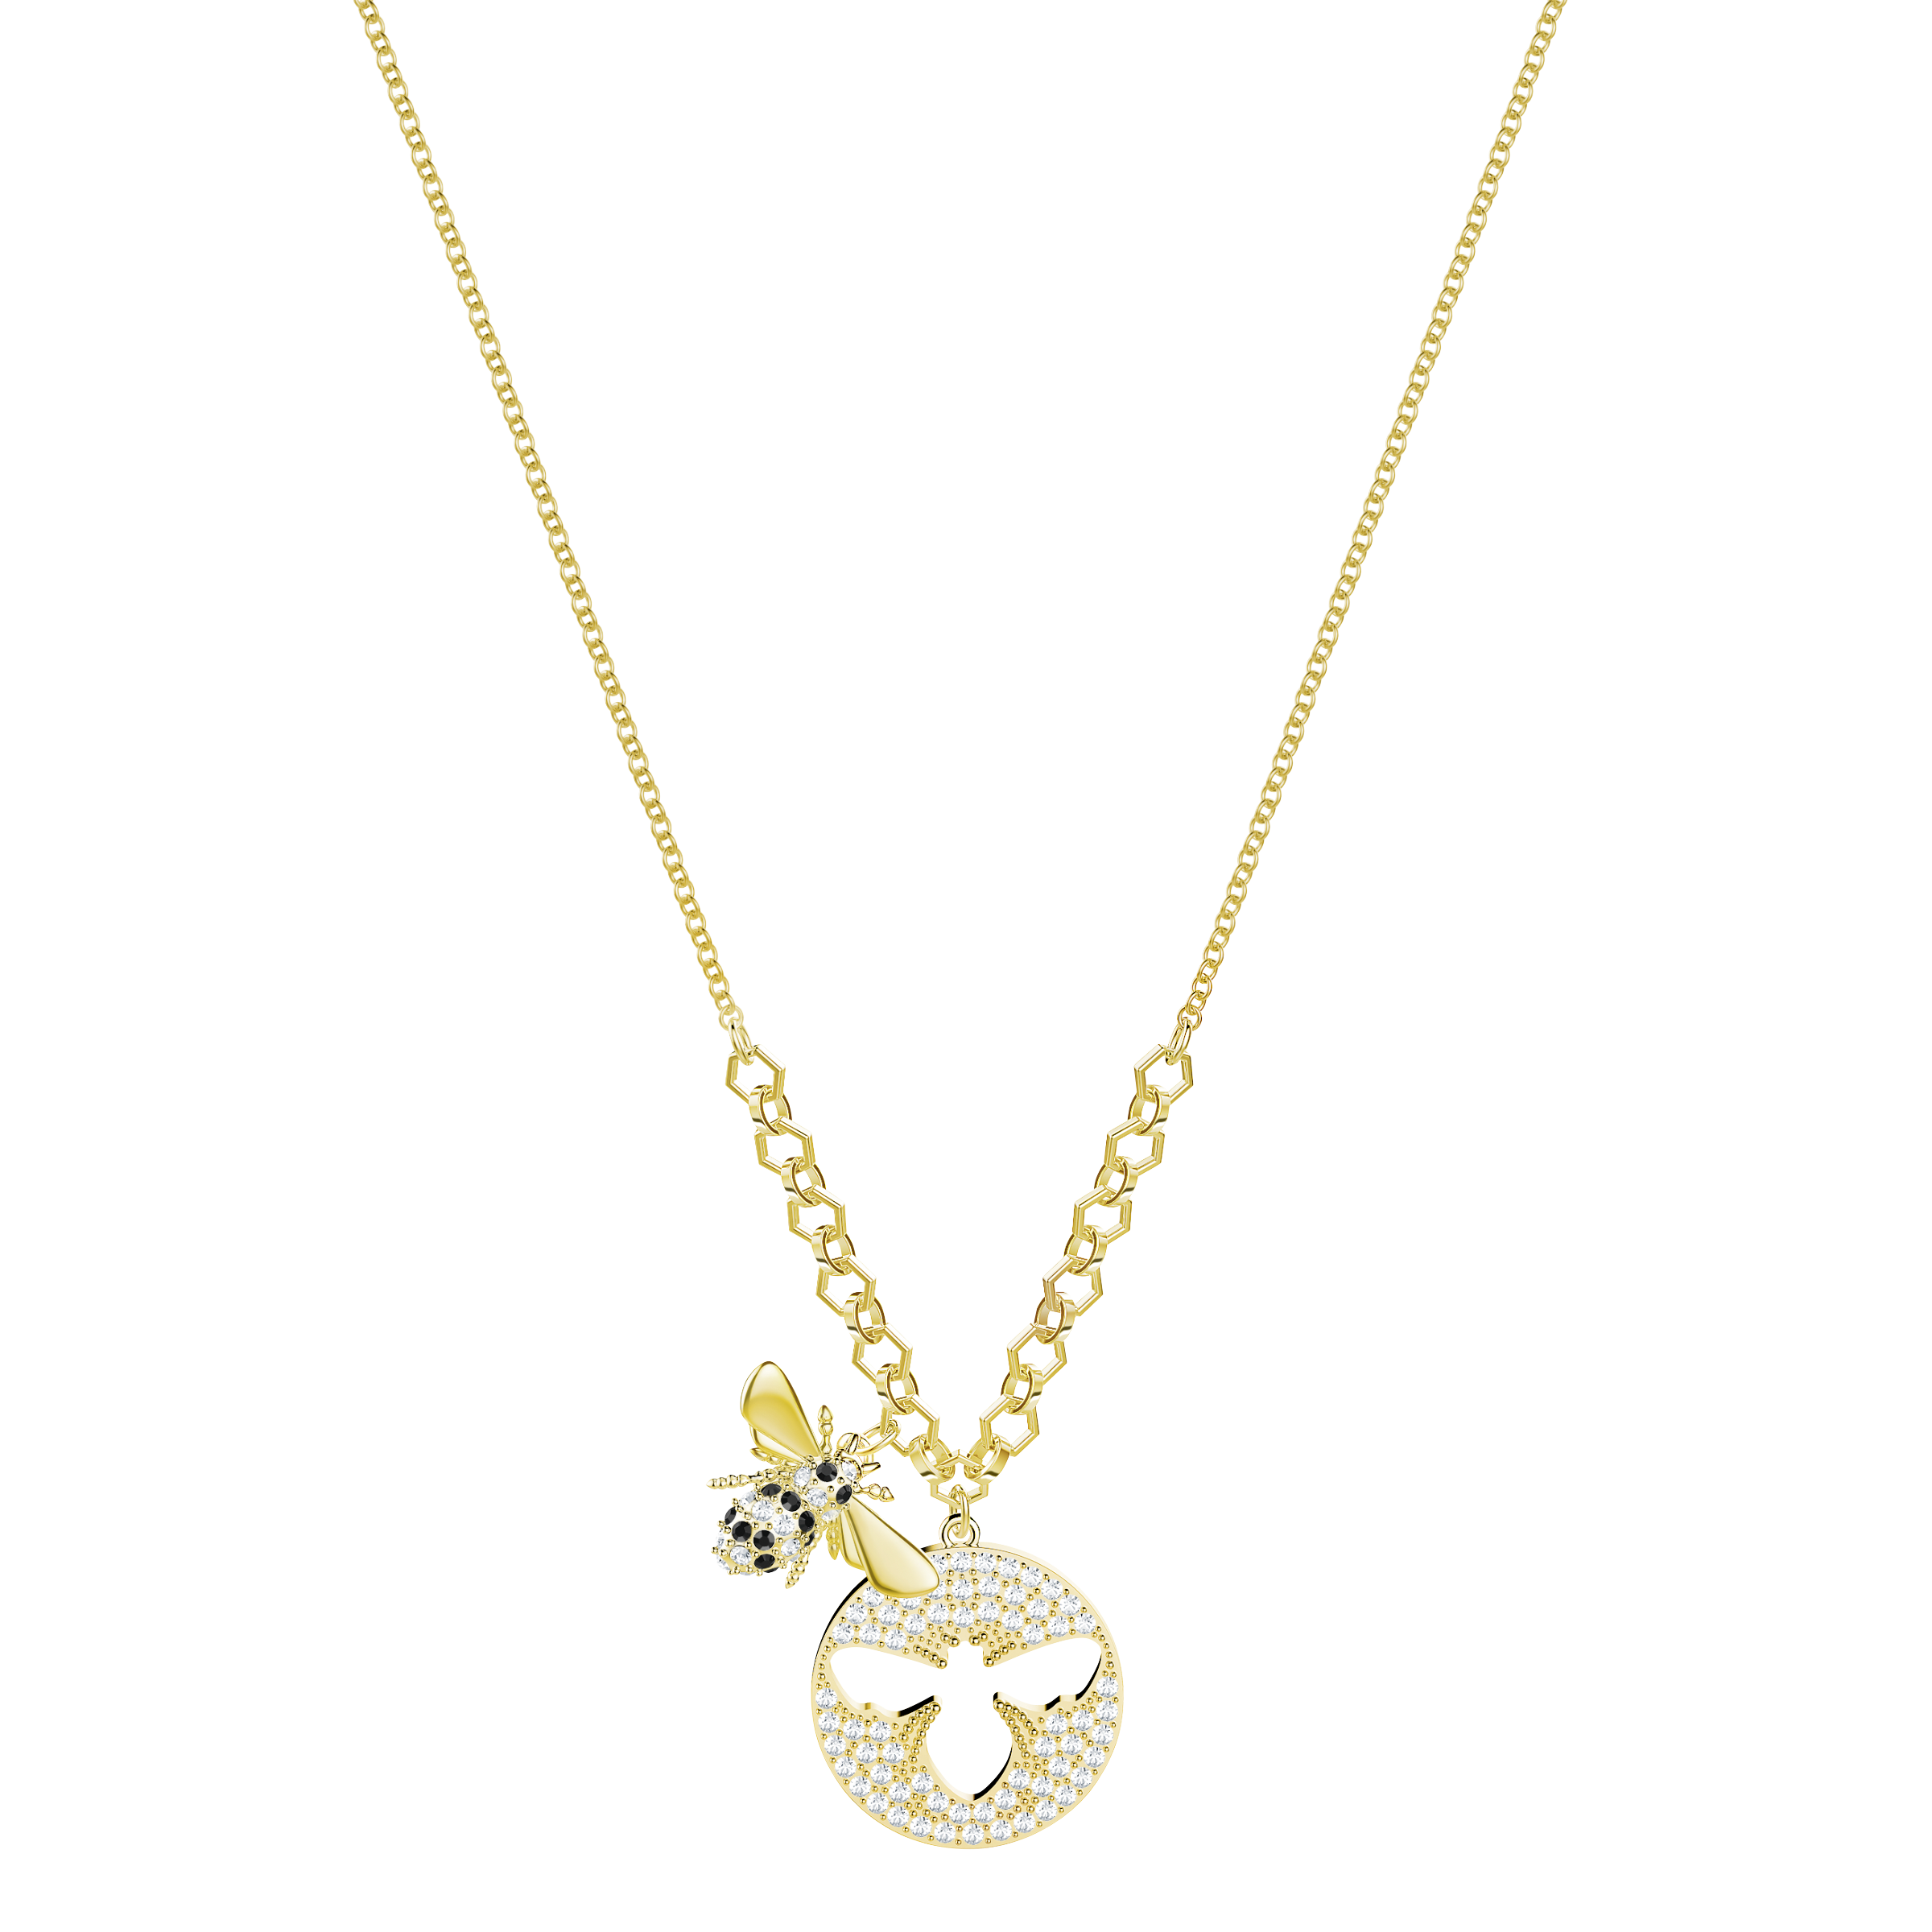 Lisabel Necklace, Small, White, Gold Plating